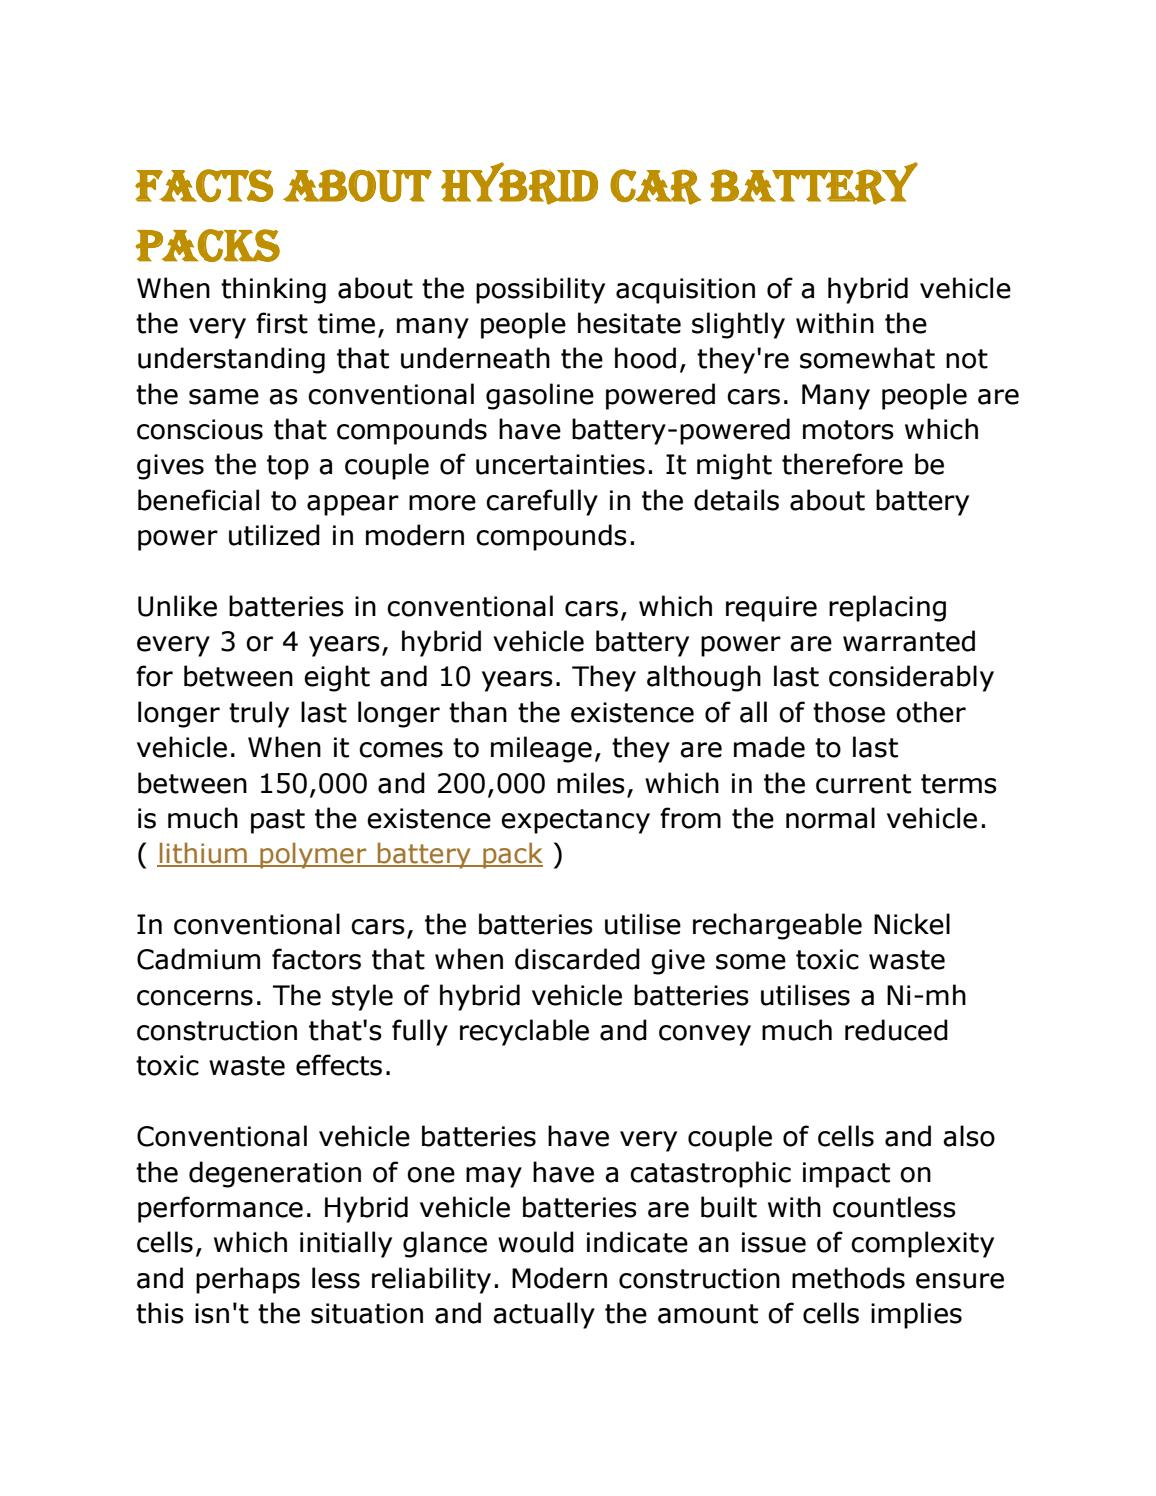 Facts About Hybrid Car Battery Packs